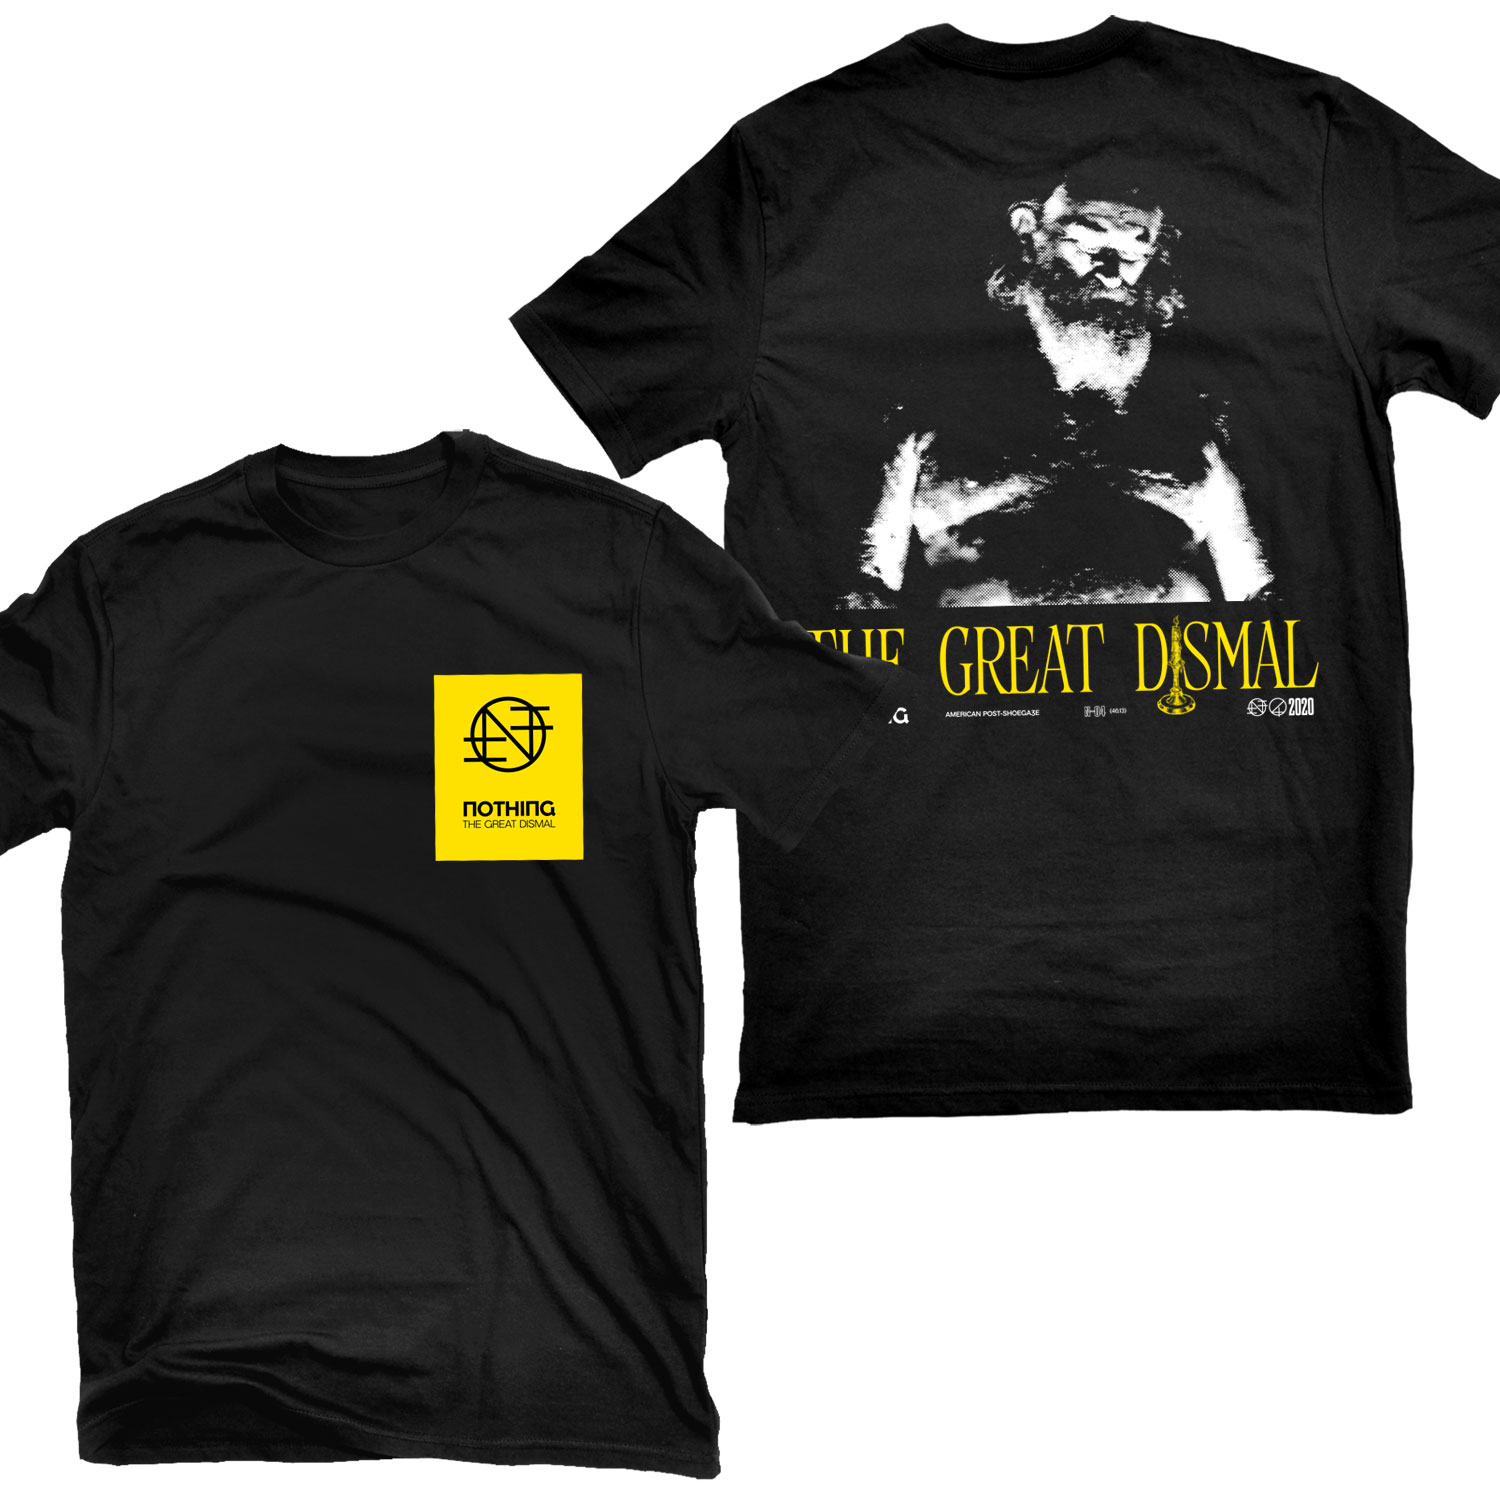 The Great Dismal T Shirt + LP Bundle